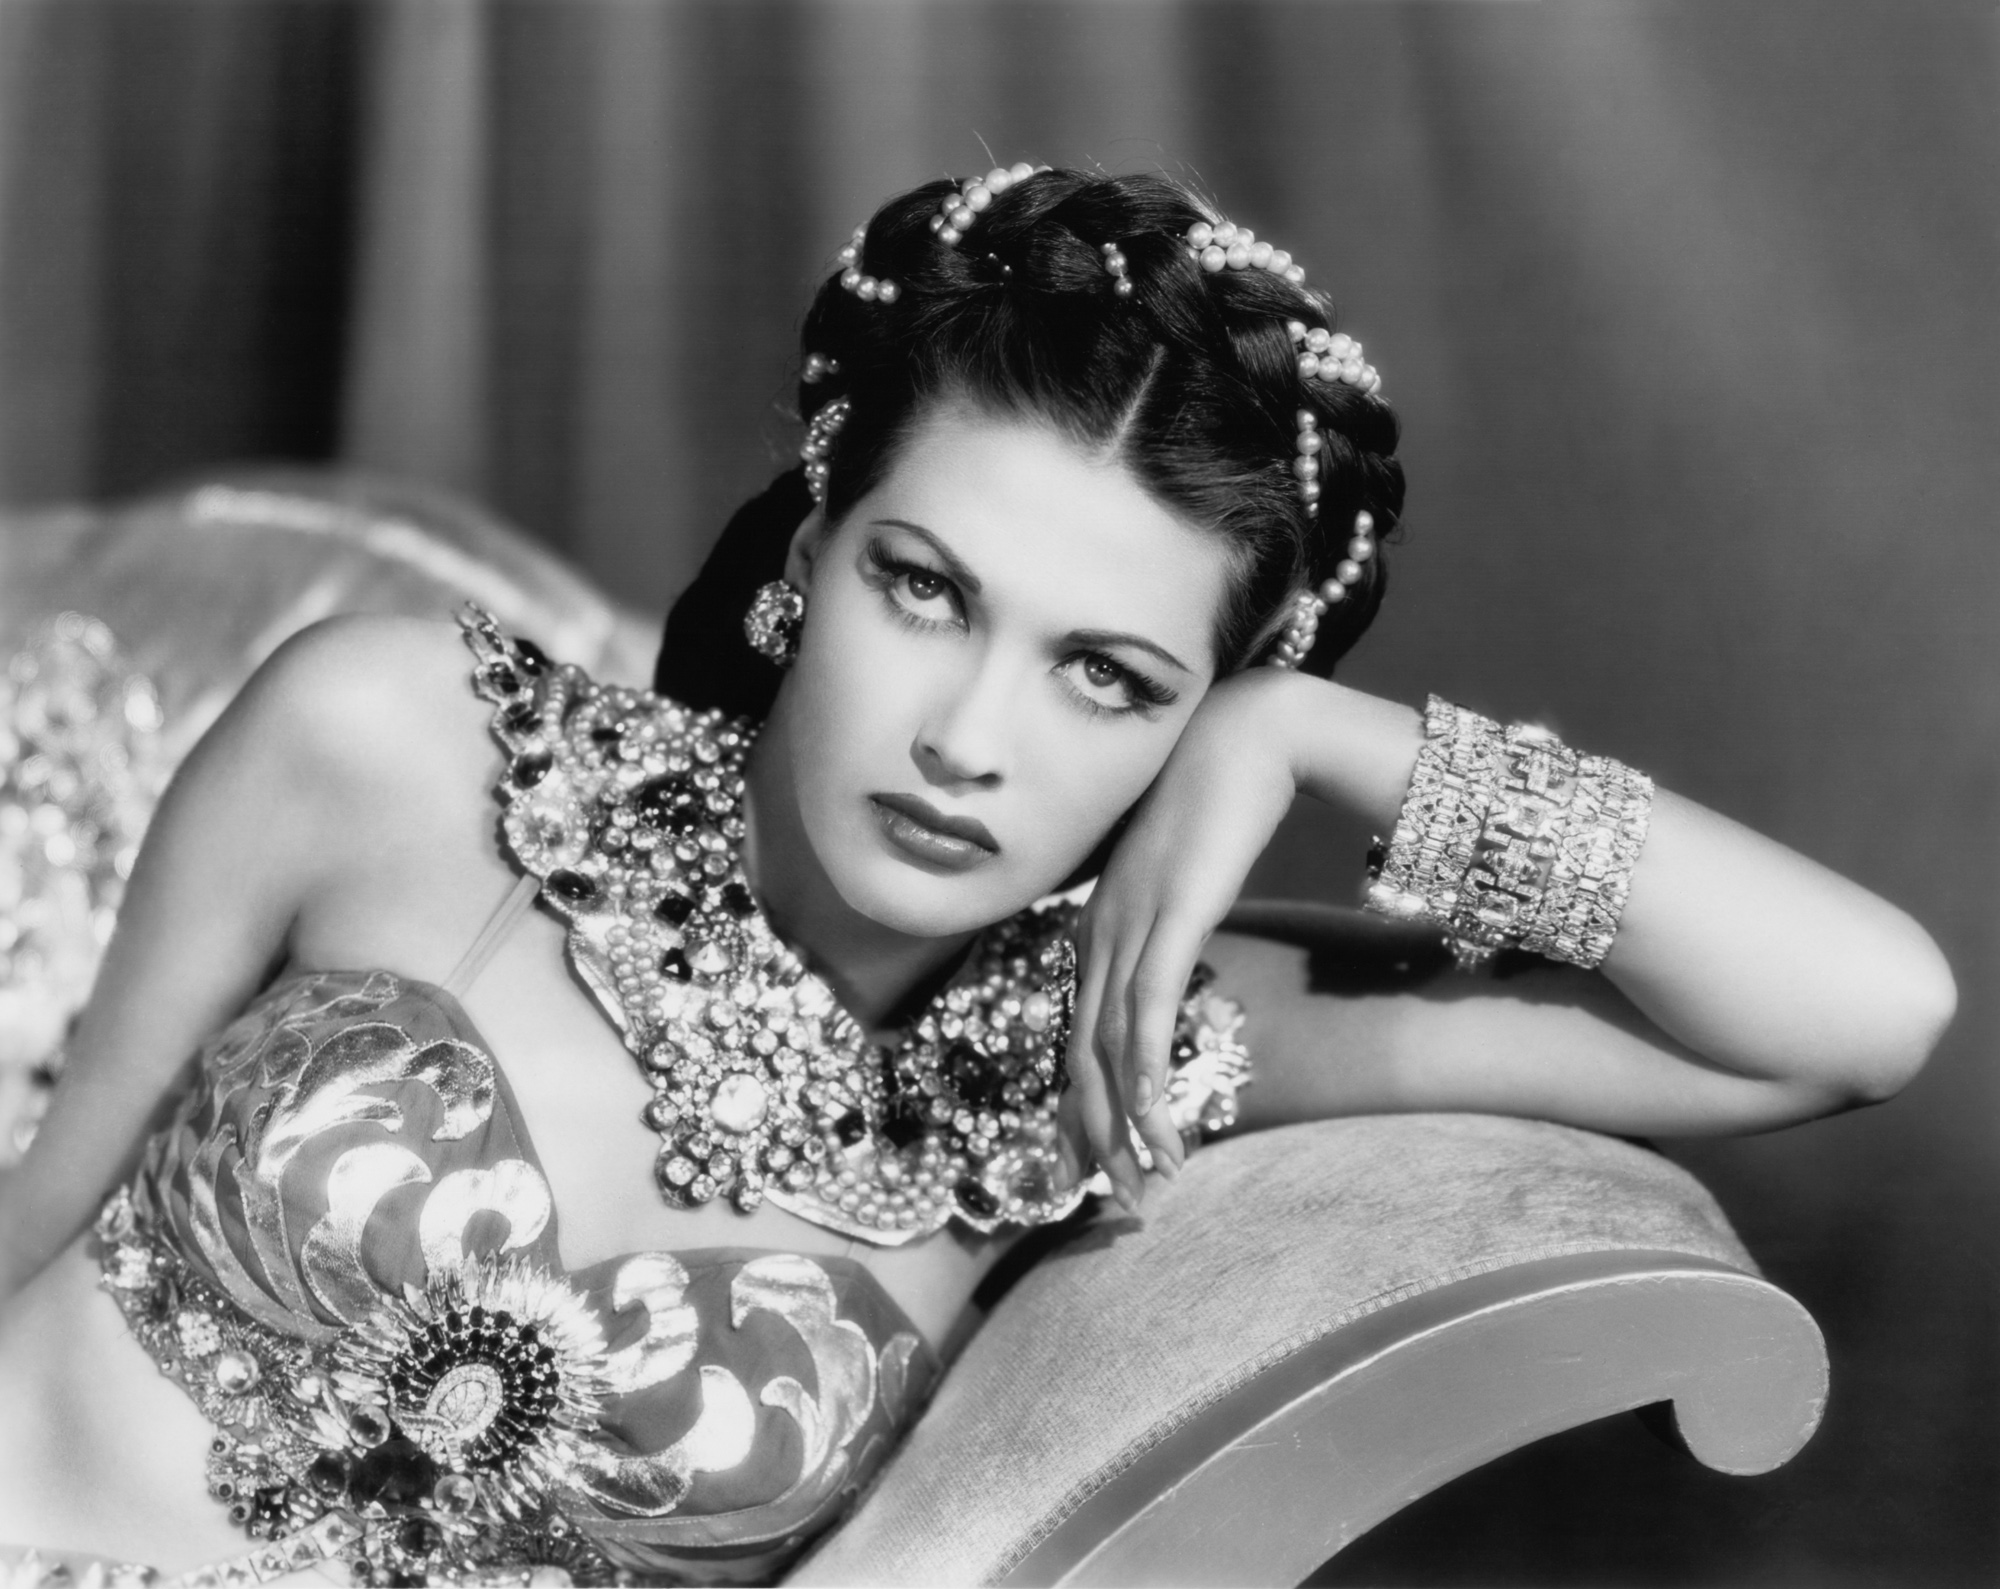 Yvonne De Carlo where is buried